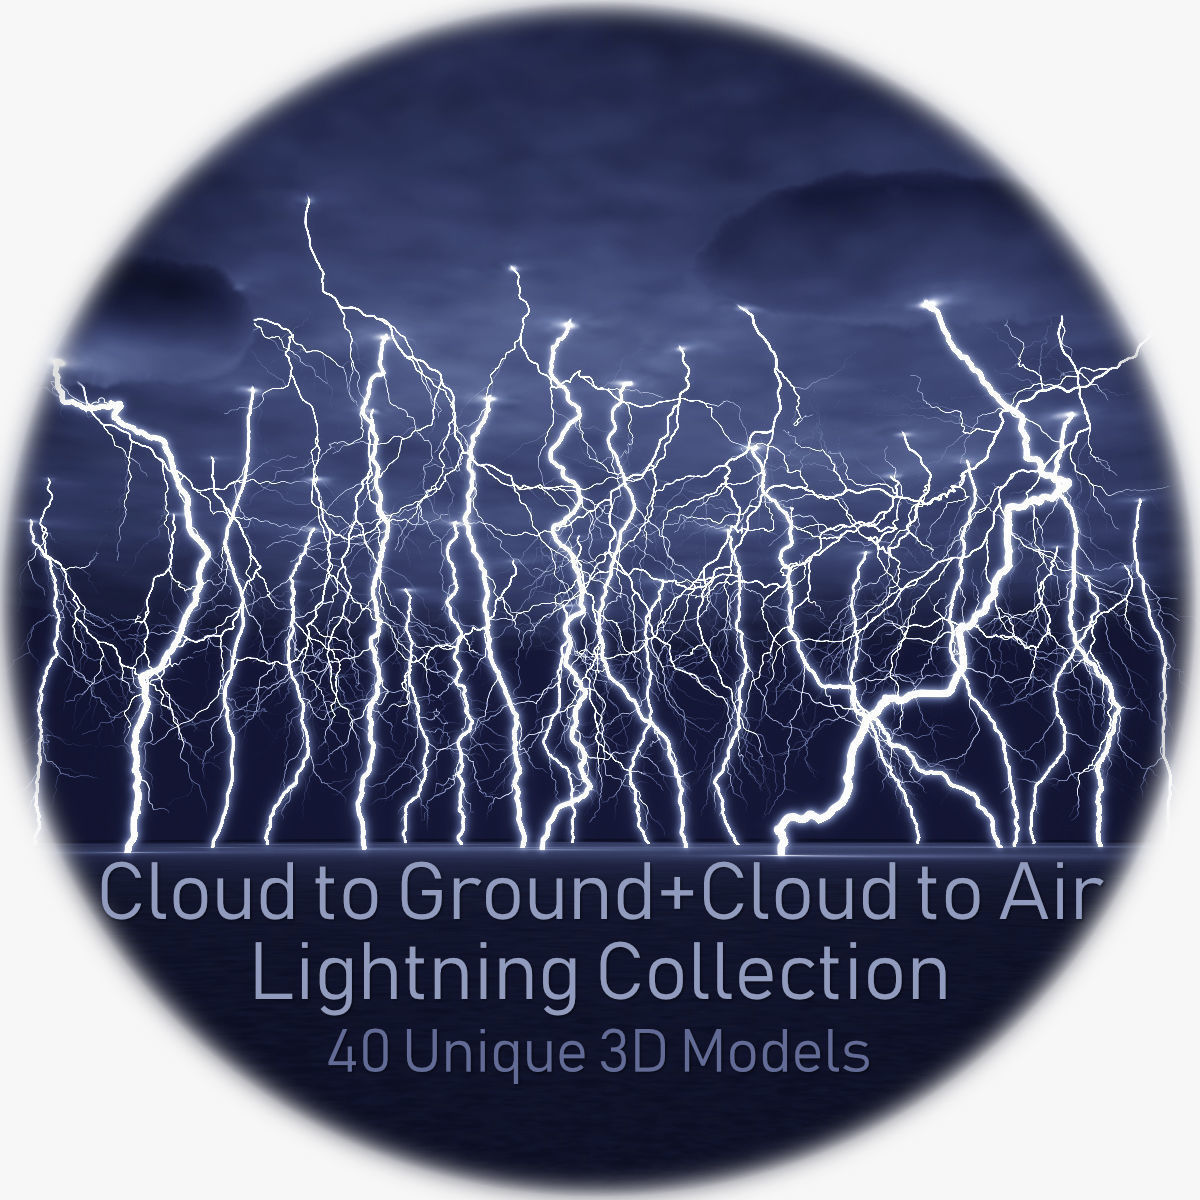 Realistic 3D Lightning Collection 40 CA and CG